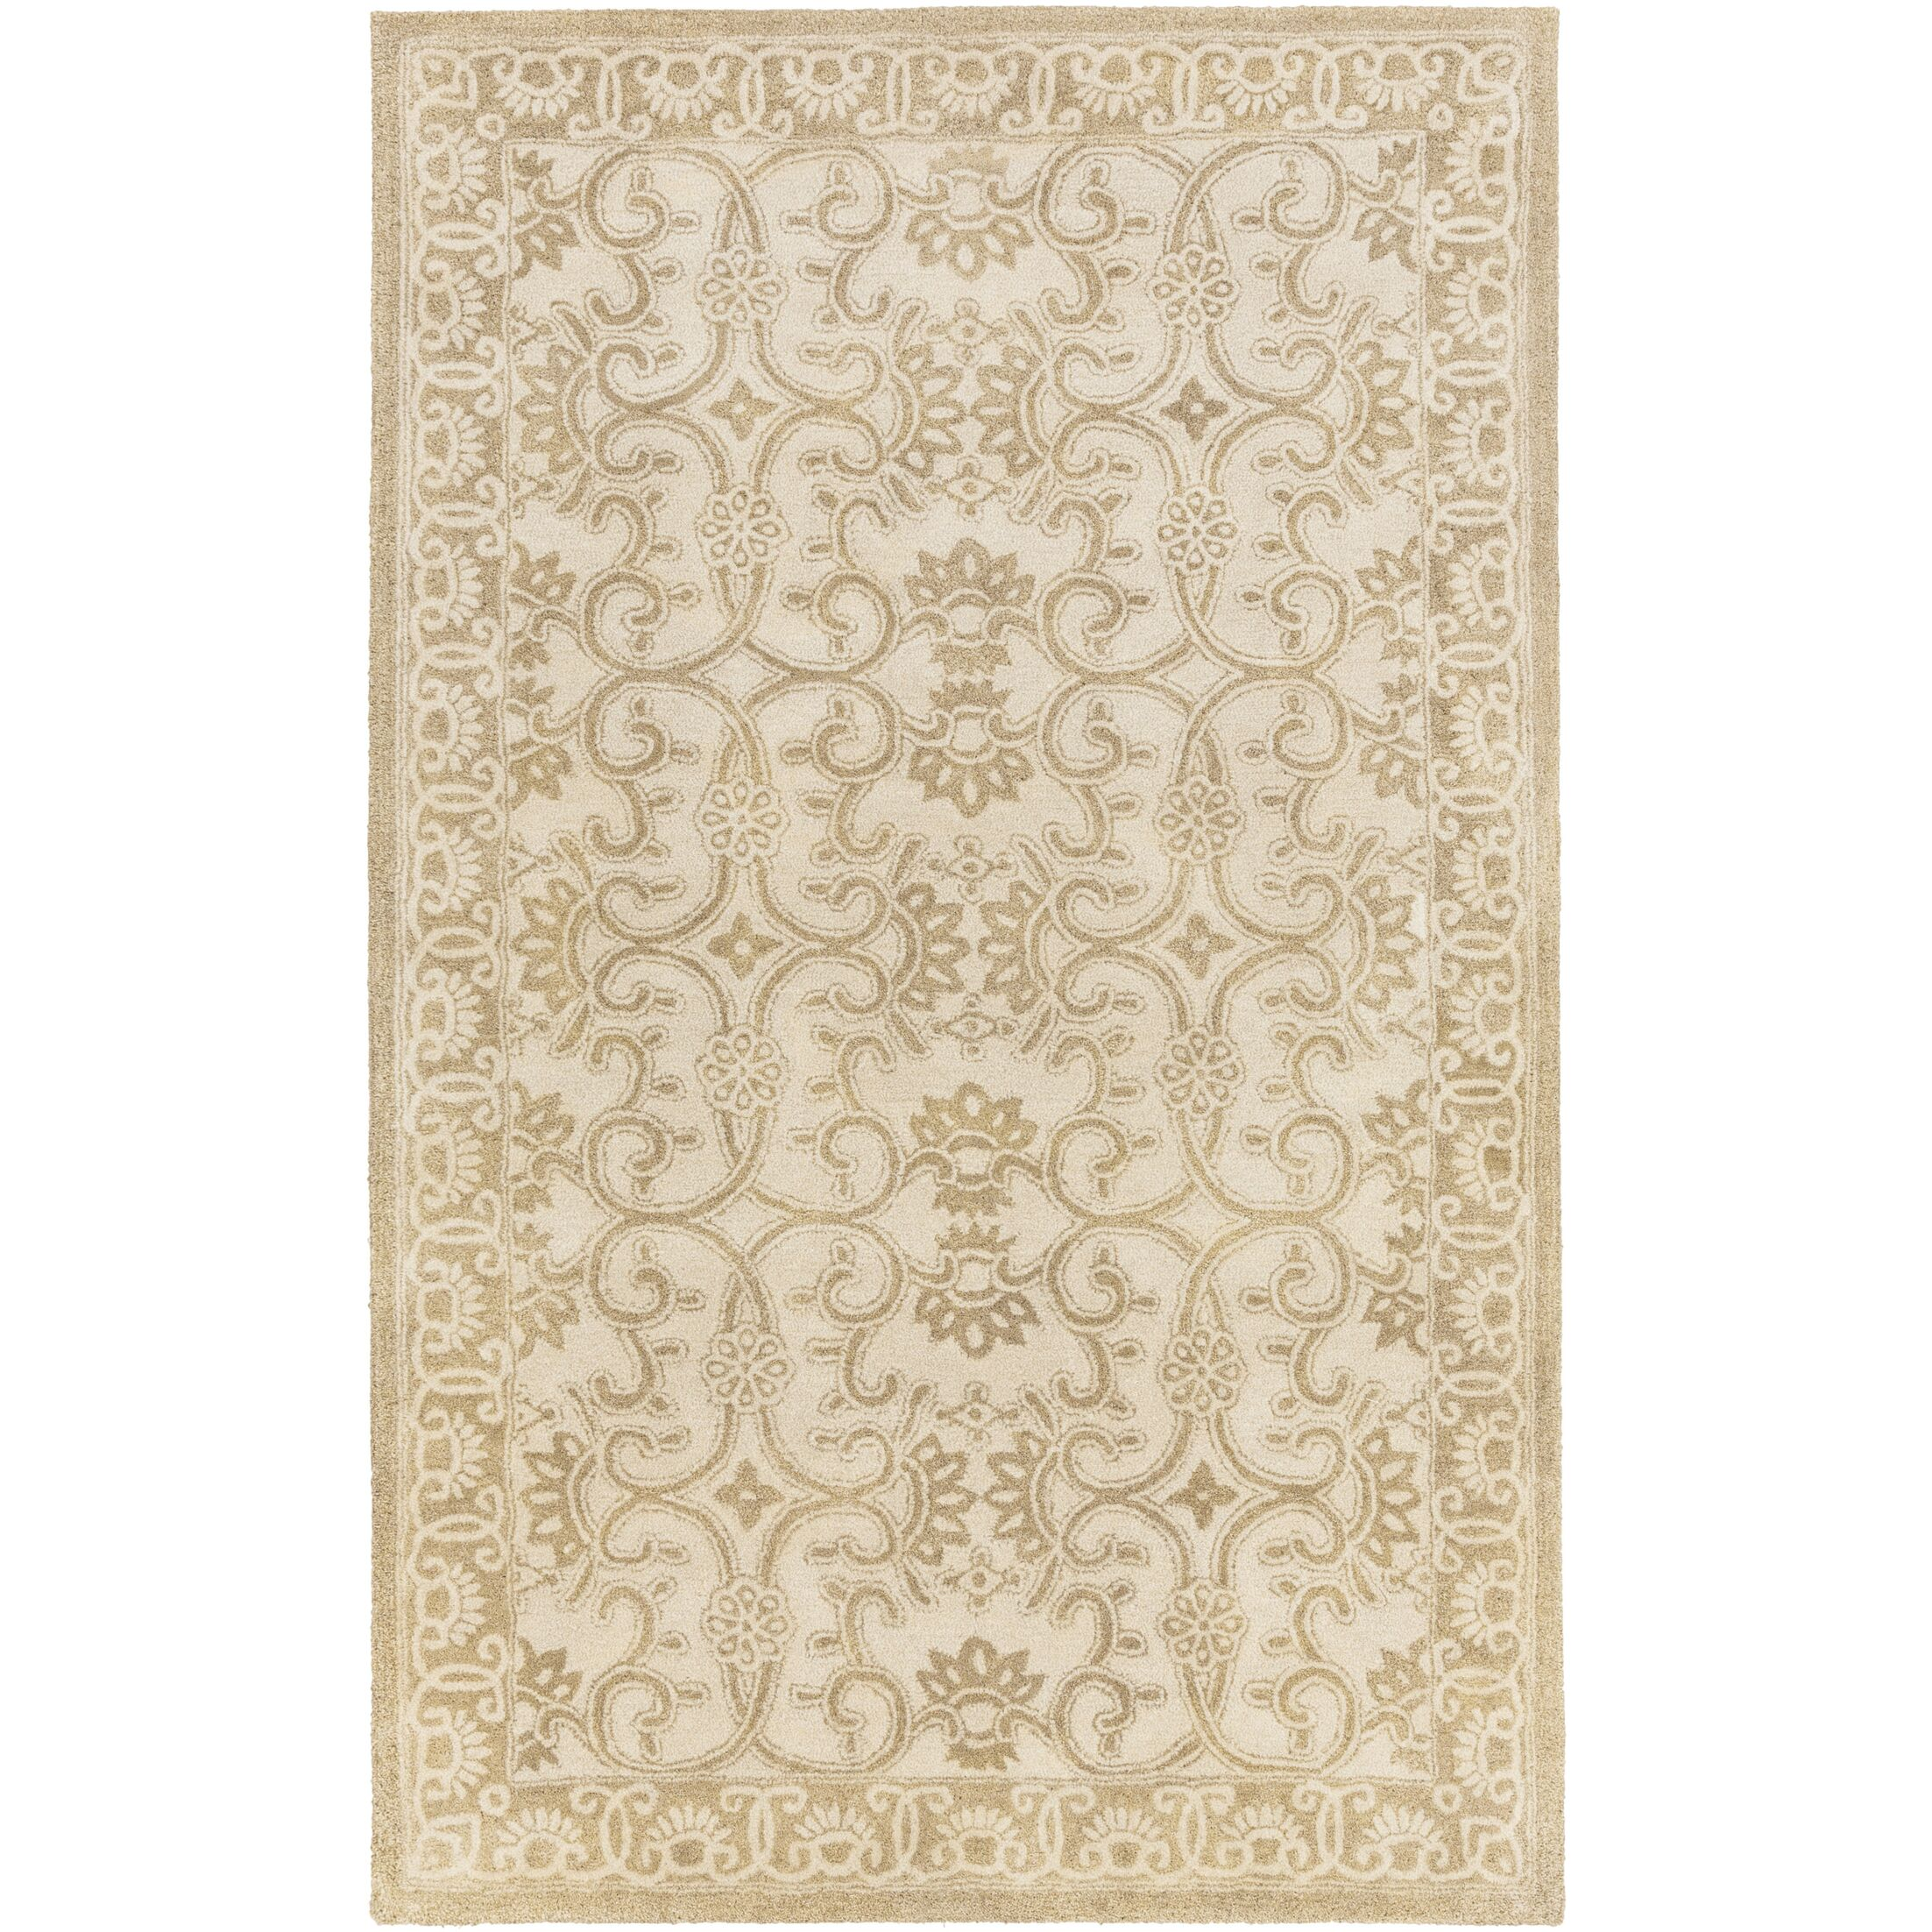 Smithsonian Hand-Tufted Brown/Neutral Area Rug Rug Size: Rectangle 5' x 8'